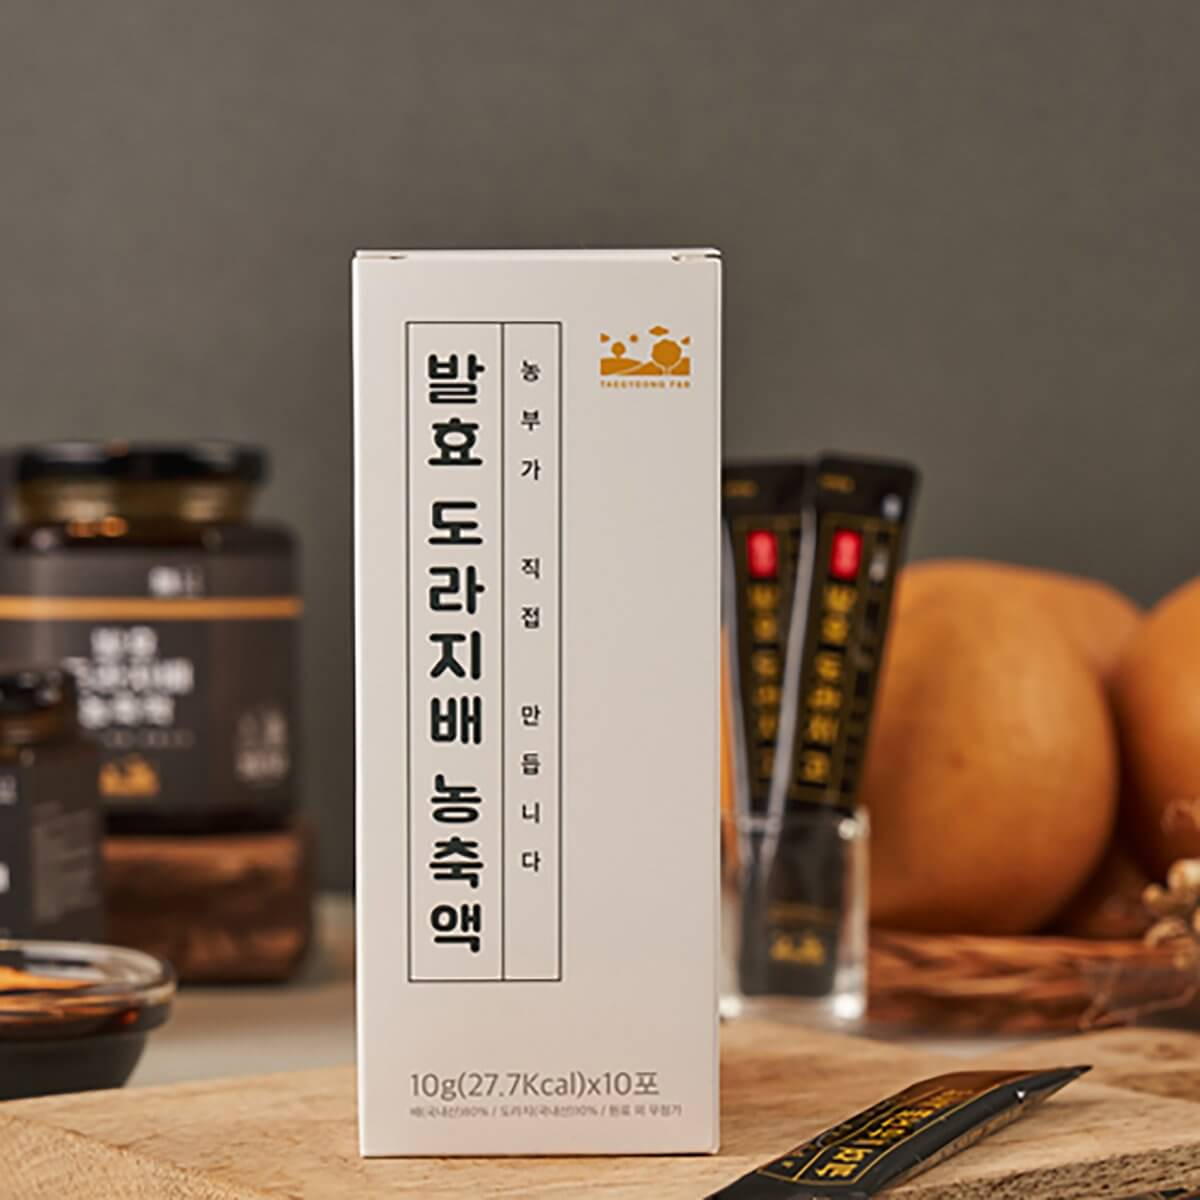 TAEGYEONG FERMENTED BELLFLOWER & PEAR INDIVIDUAL STICKS 발효도라지배농축액 (스틱제품)